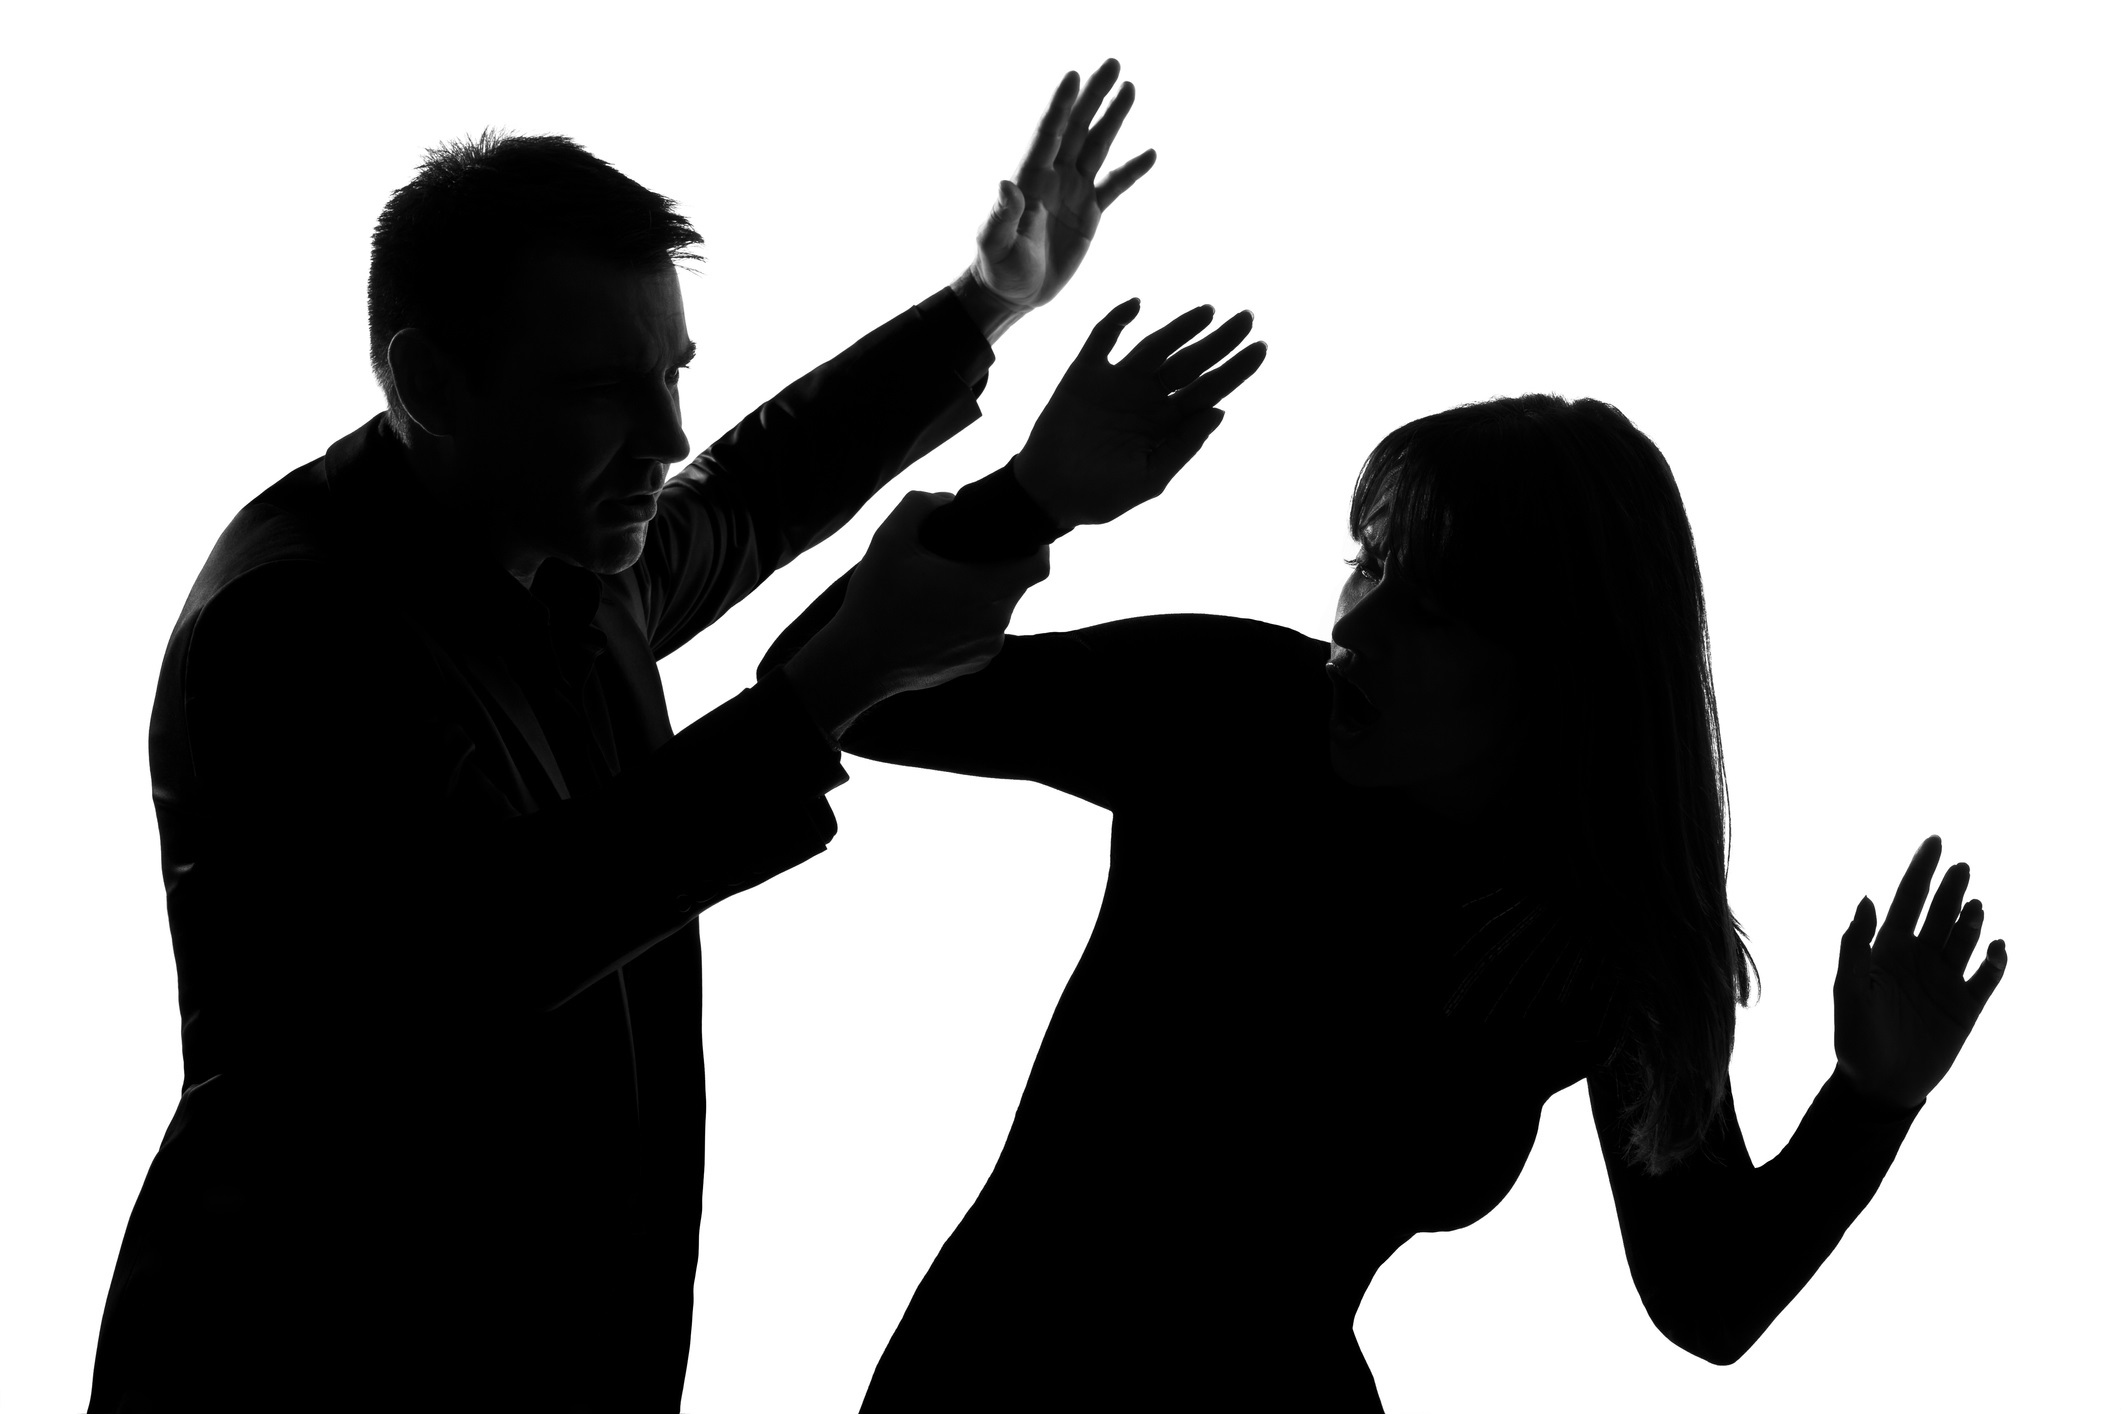 Silhouettes of a man and a woman during an altercation